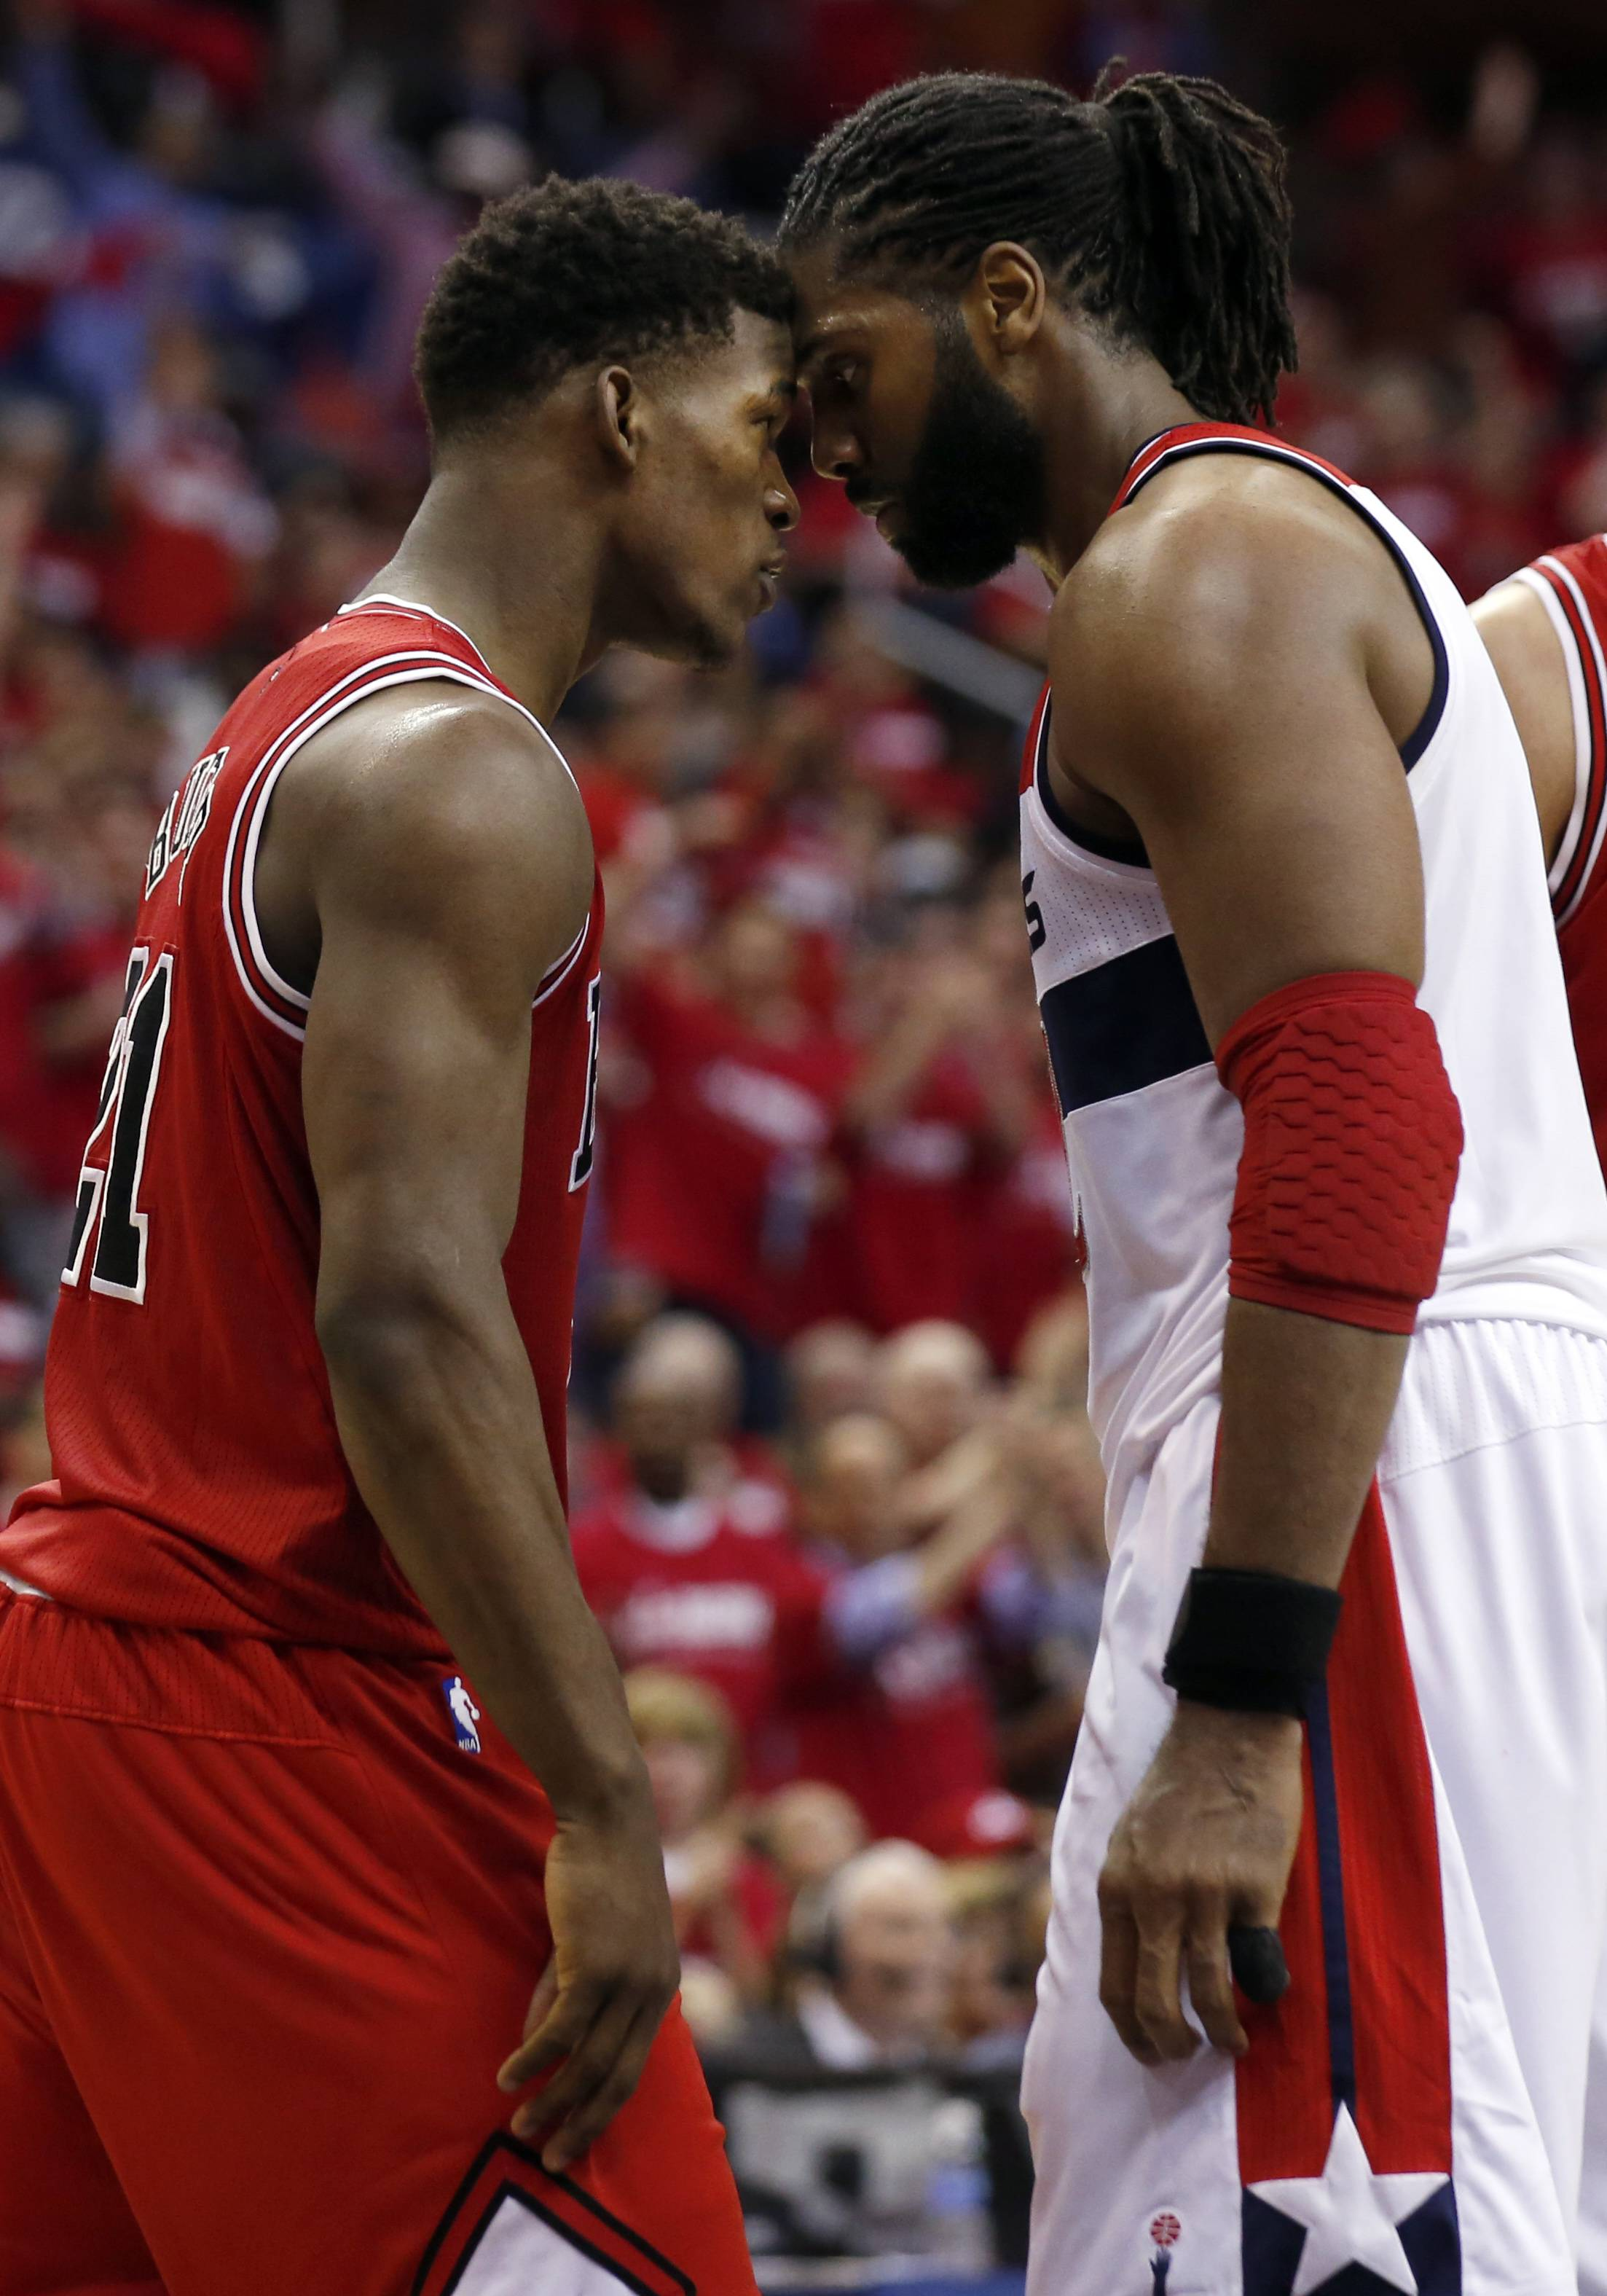 The NBA announced a one-game suspension for Wizards power forward Nene on Saturday afternoon. He'll have to sit out Sunday's Game 4 against the Bulls.